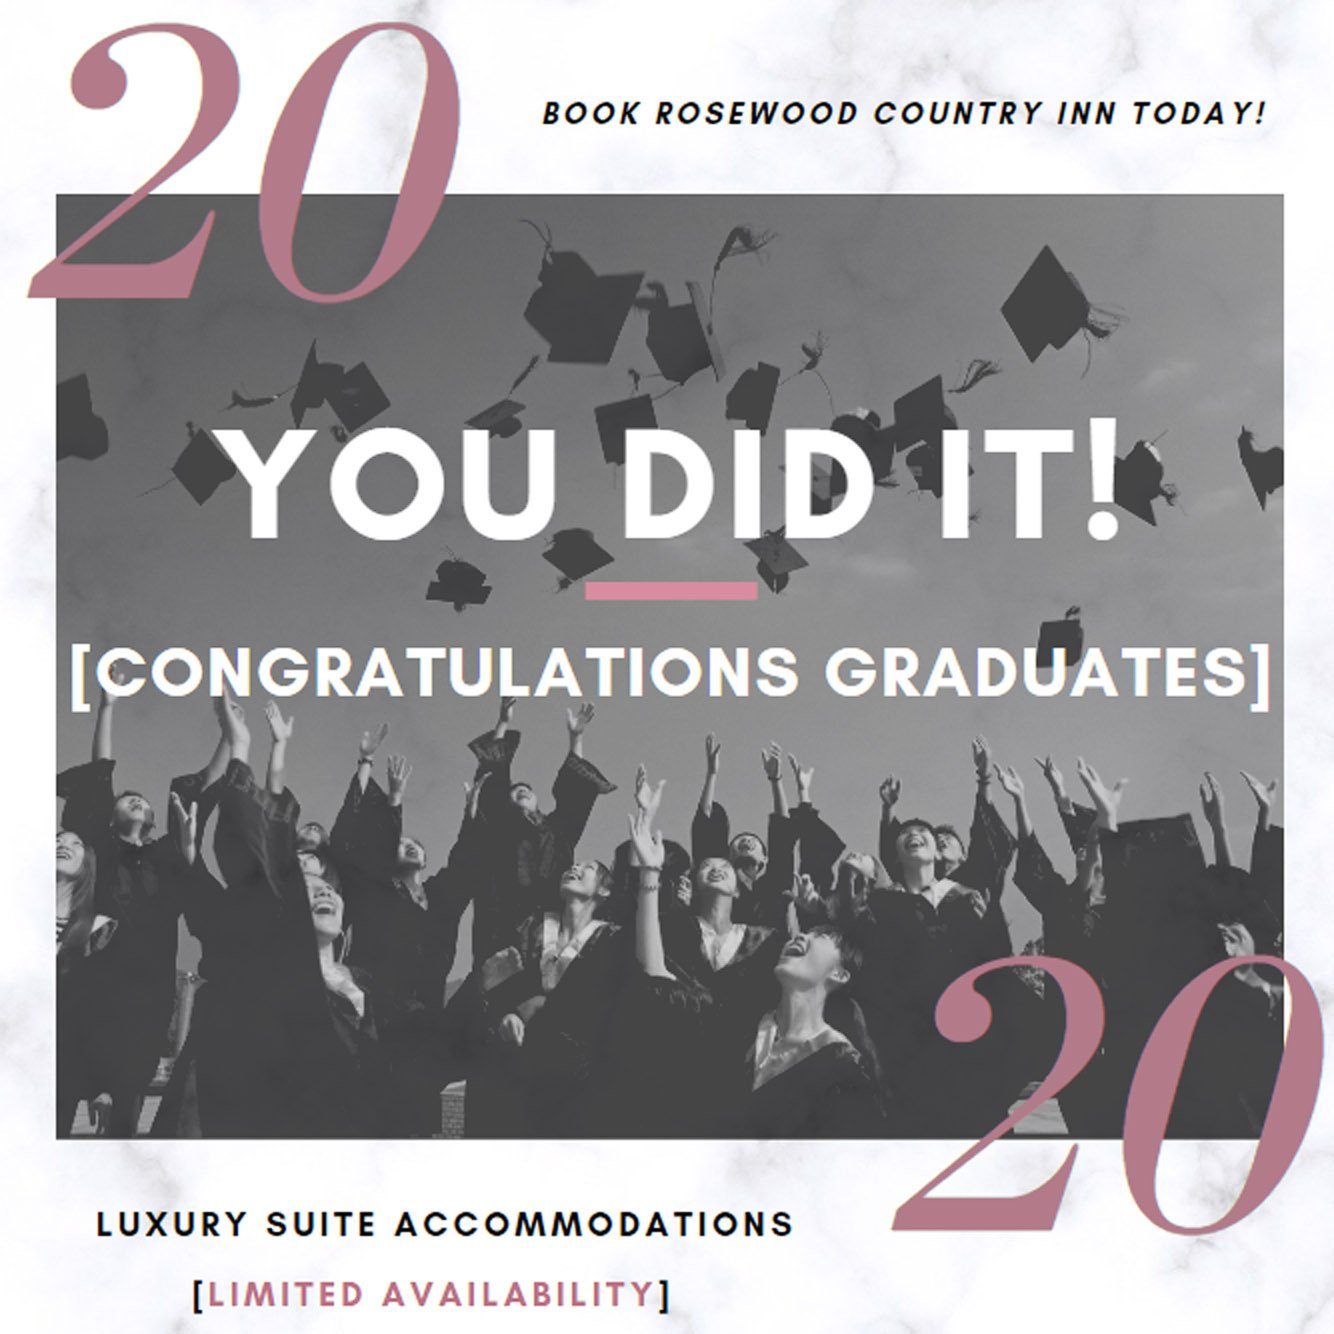 Book Rosewood Country Inn For Upcoming College Graduation Events